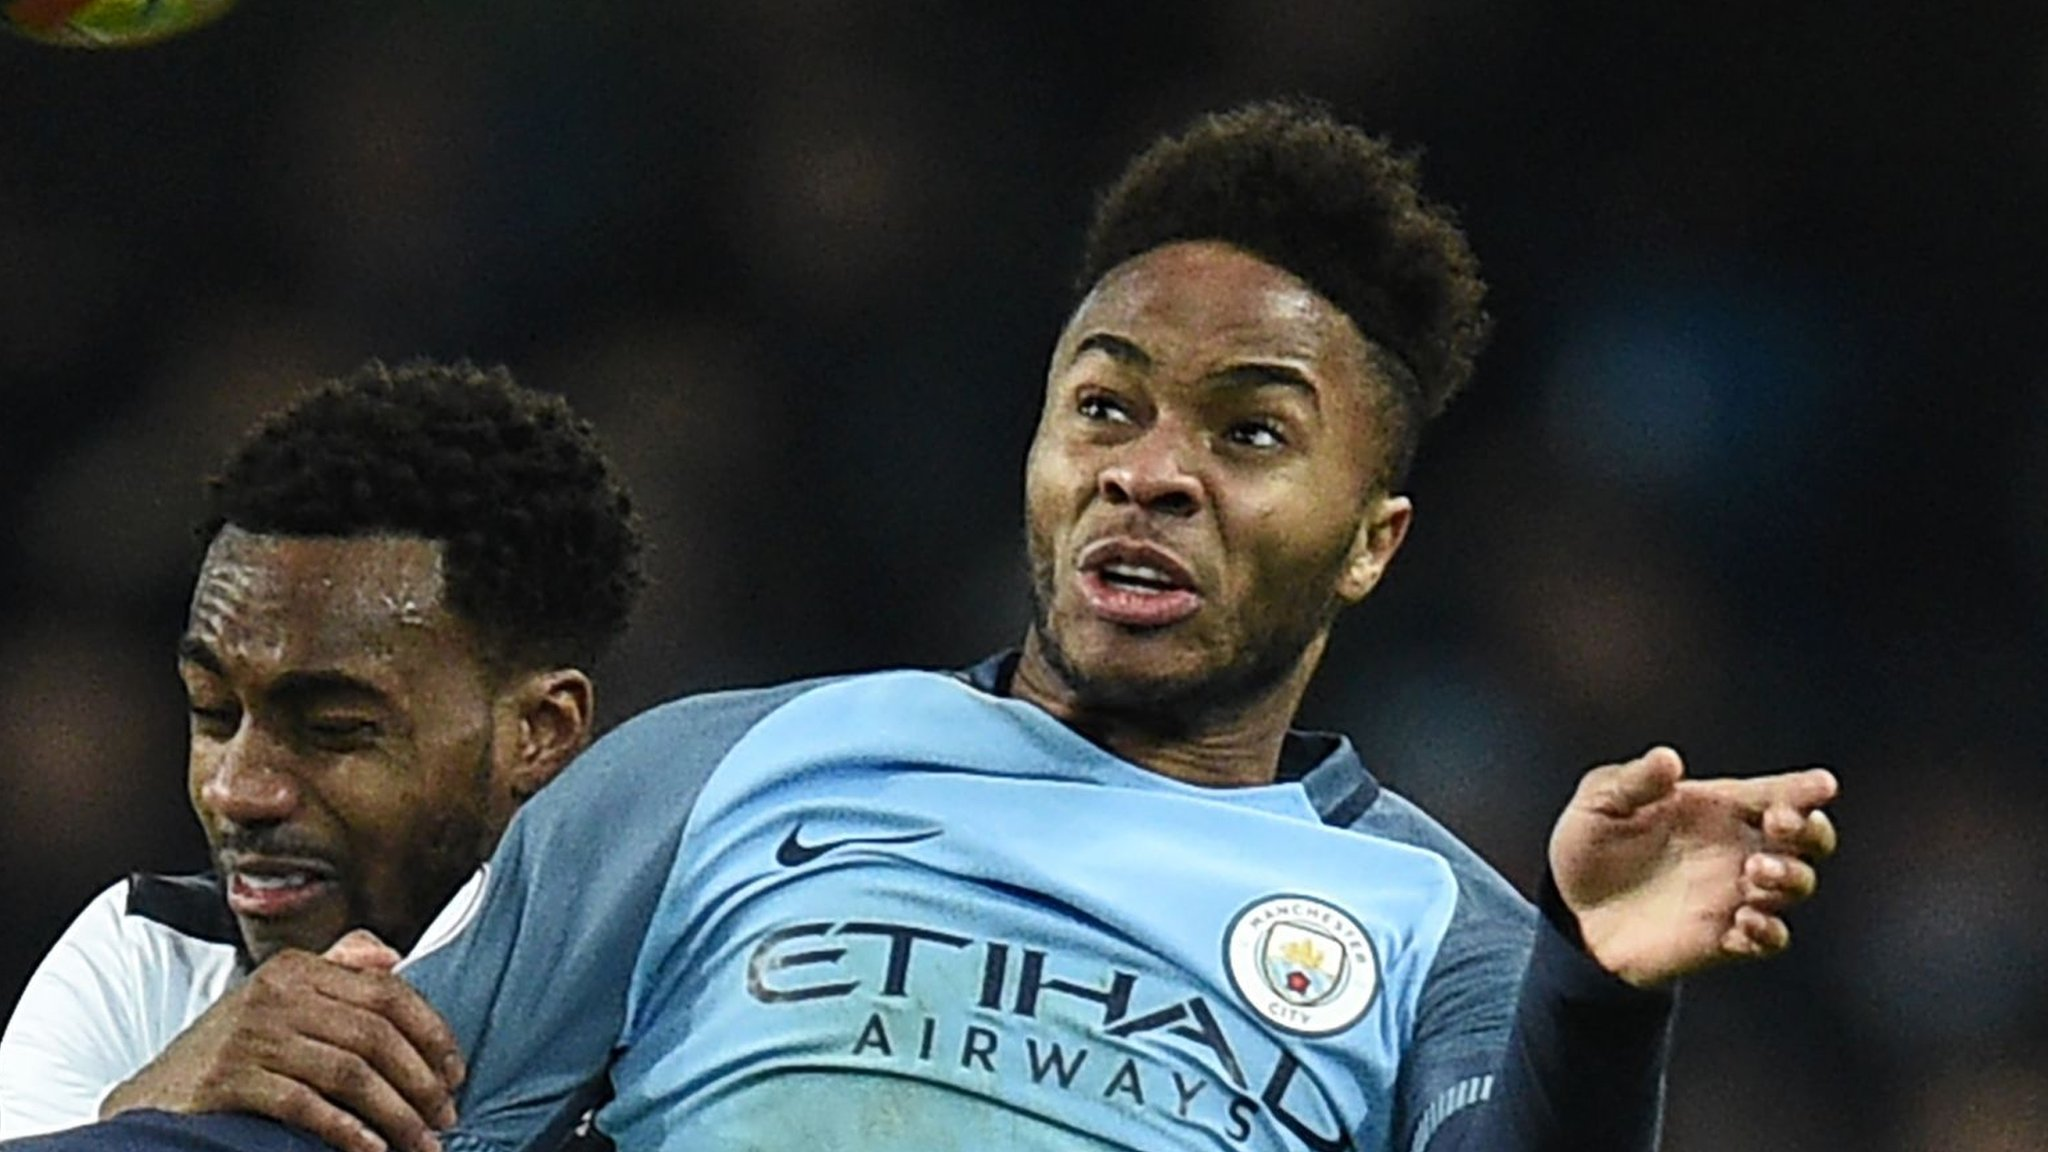 Raheem Sterling: Man City winger should have dived for penalty - Yaya Toure